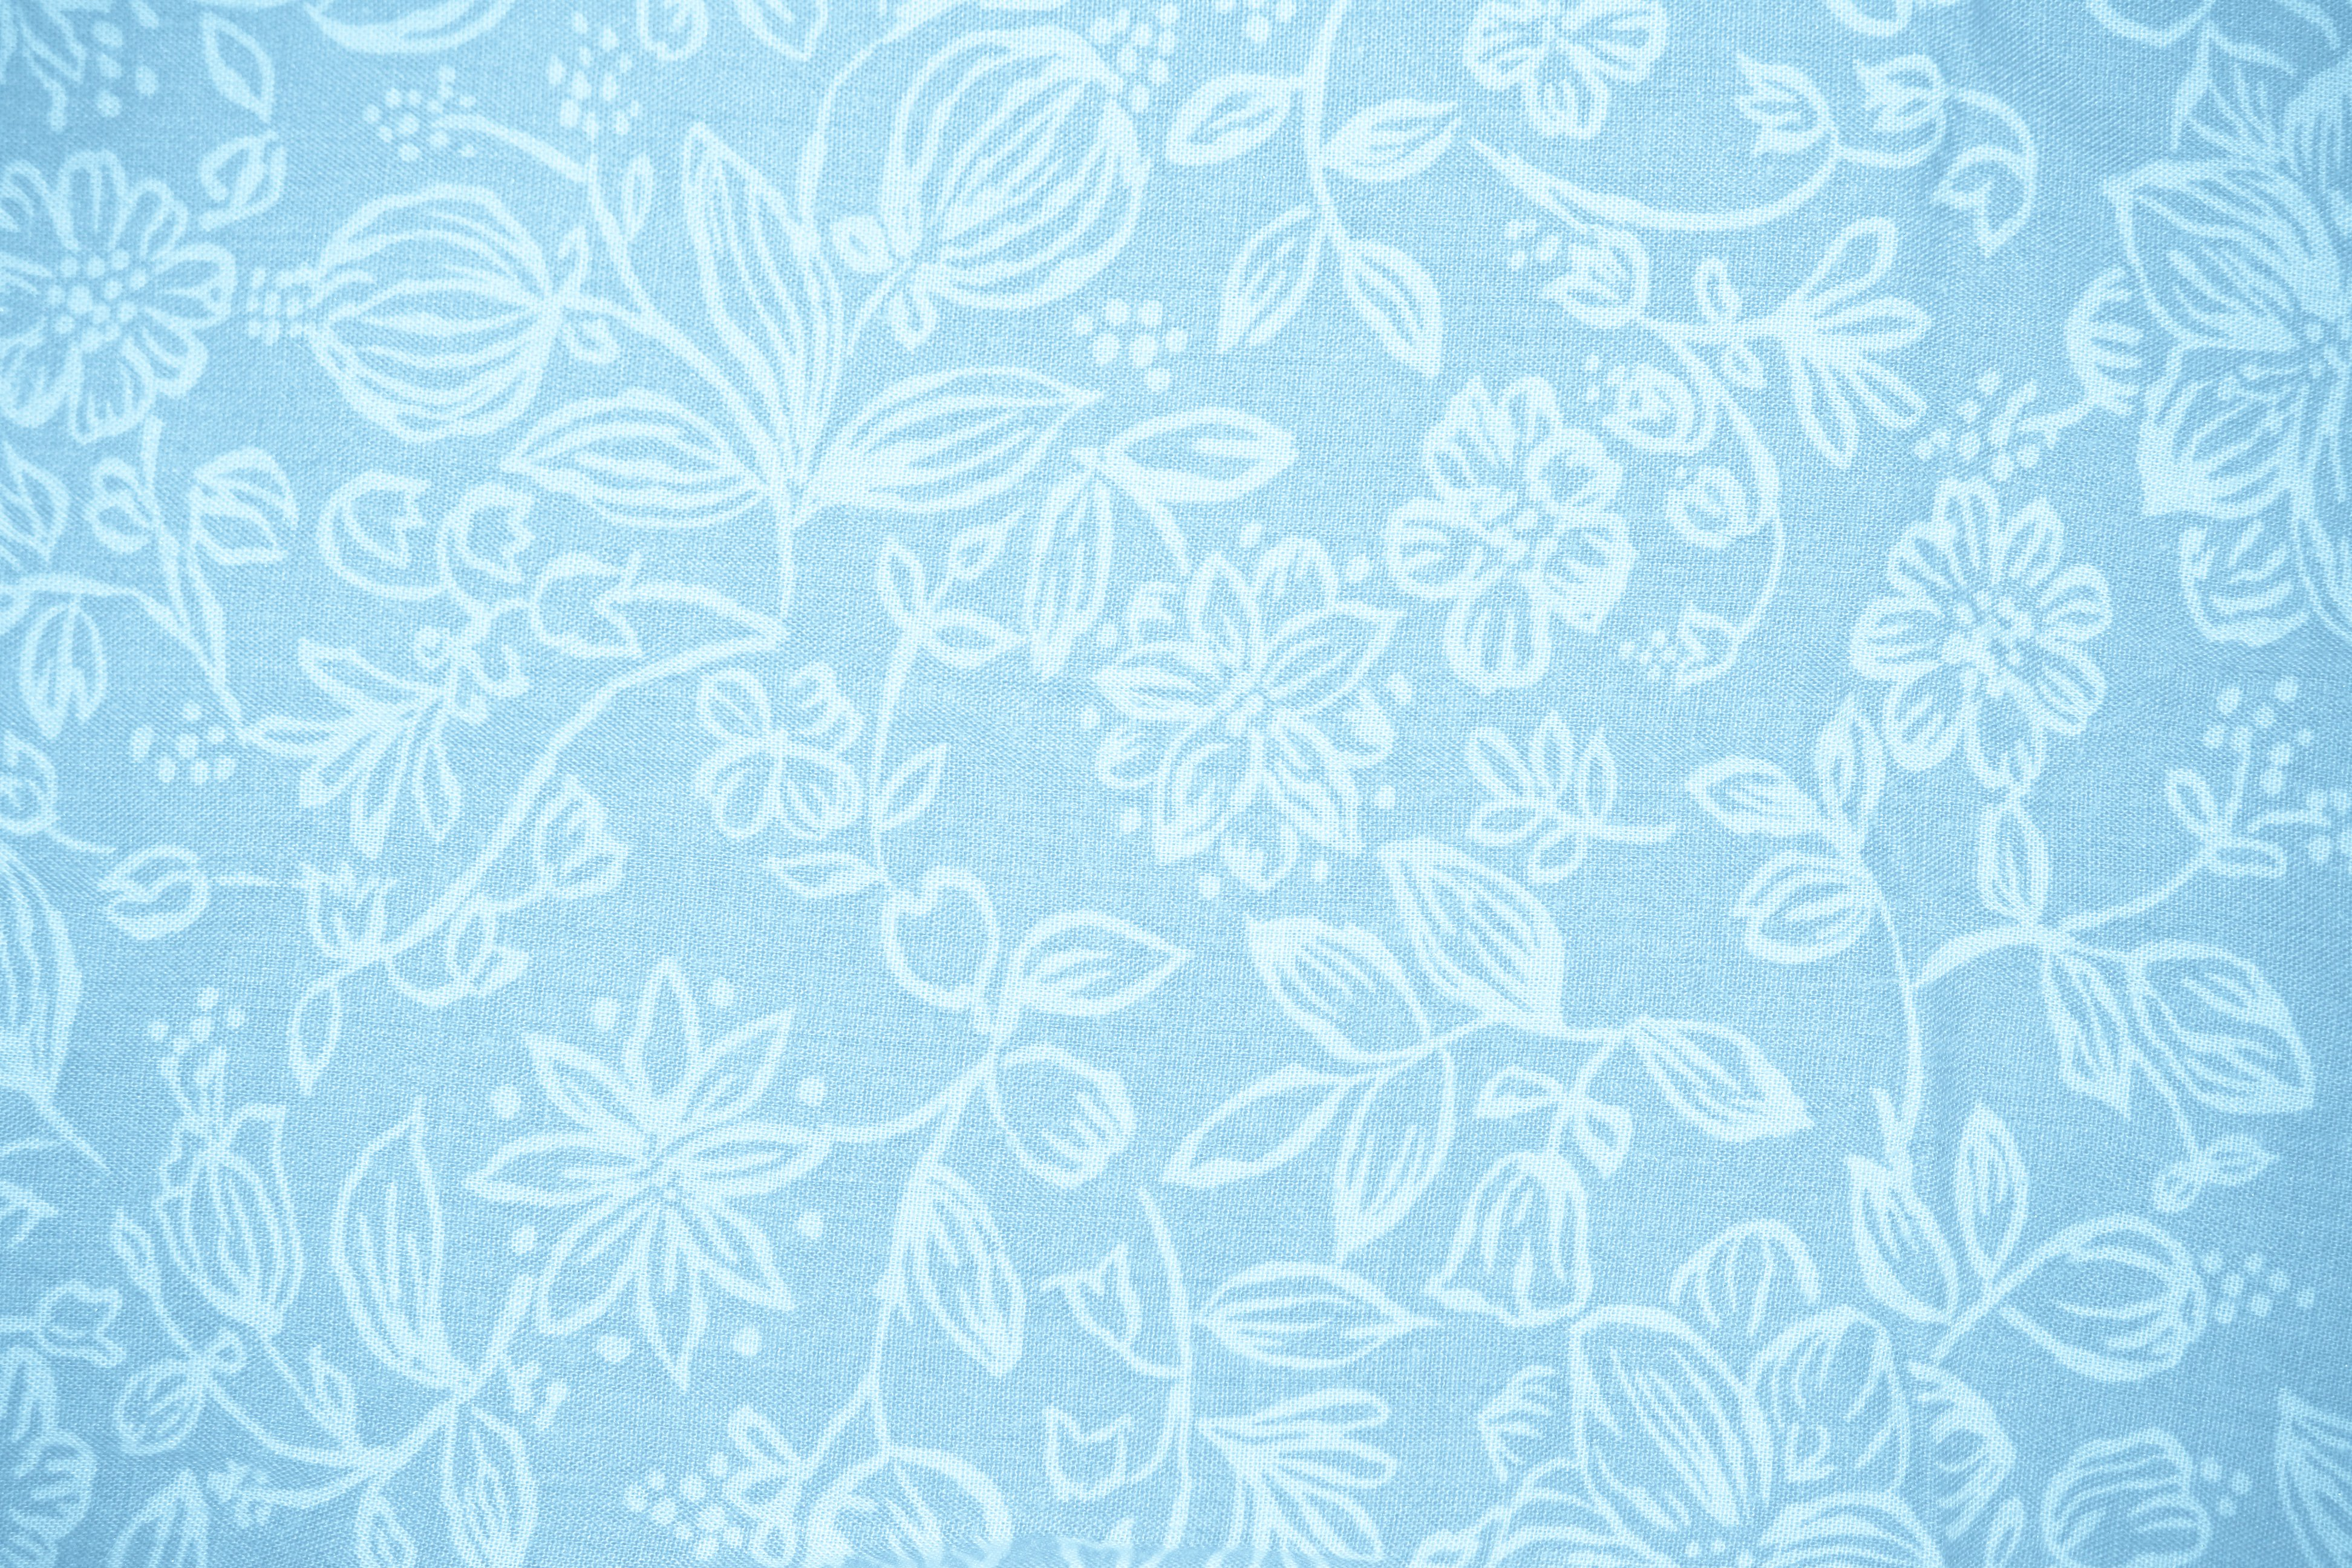 Free Download Baby Blue Fabric With Floral Pattern Texture Picture